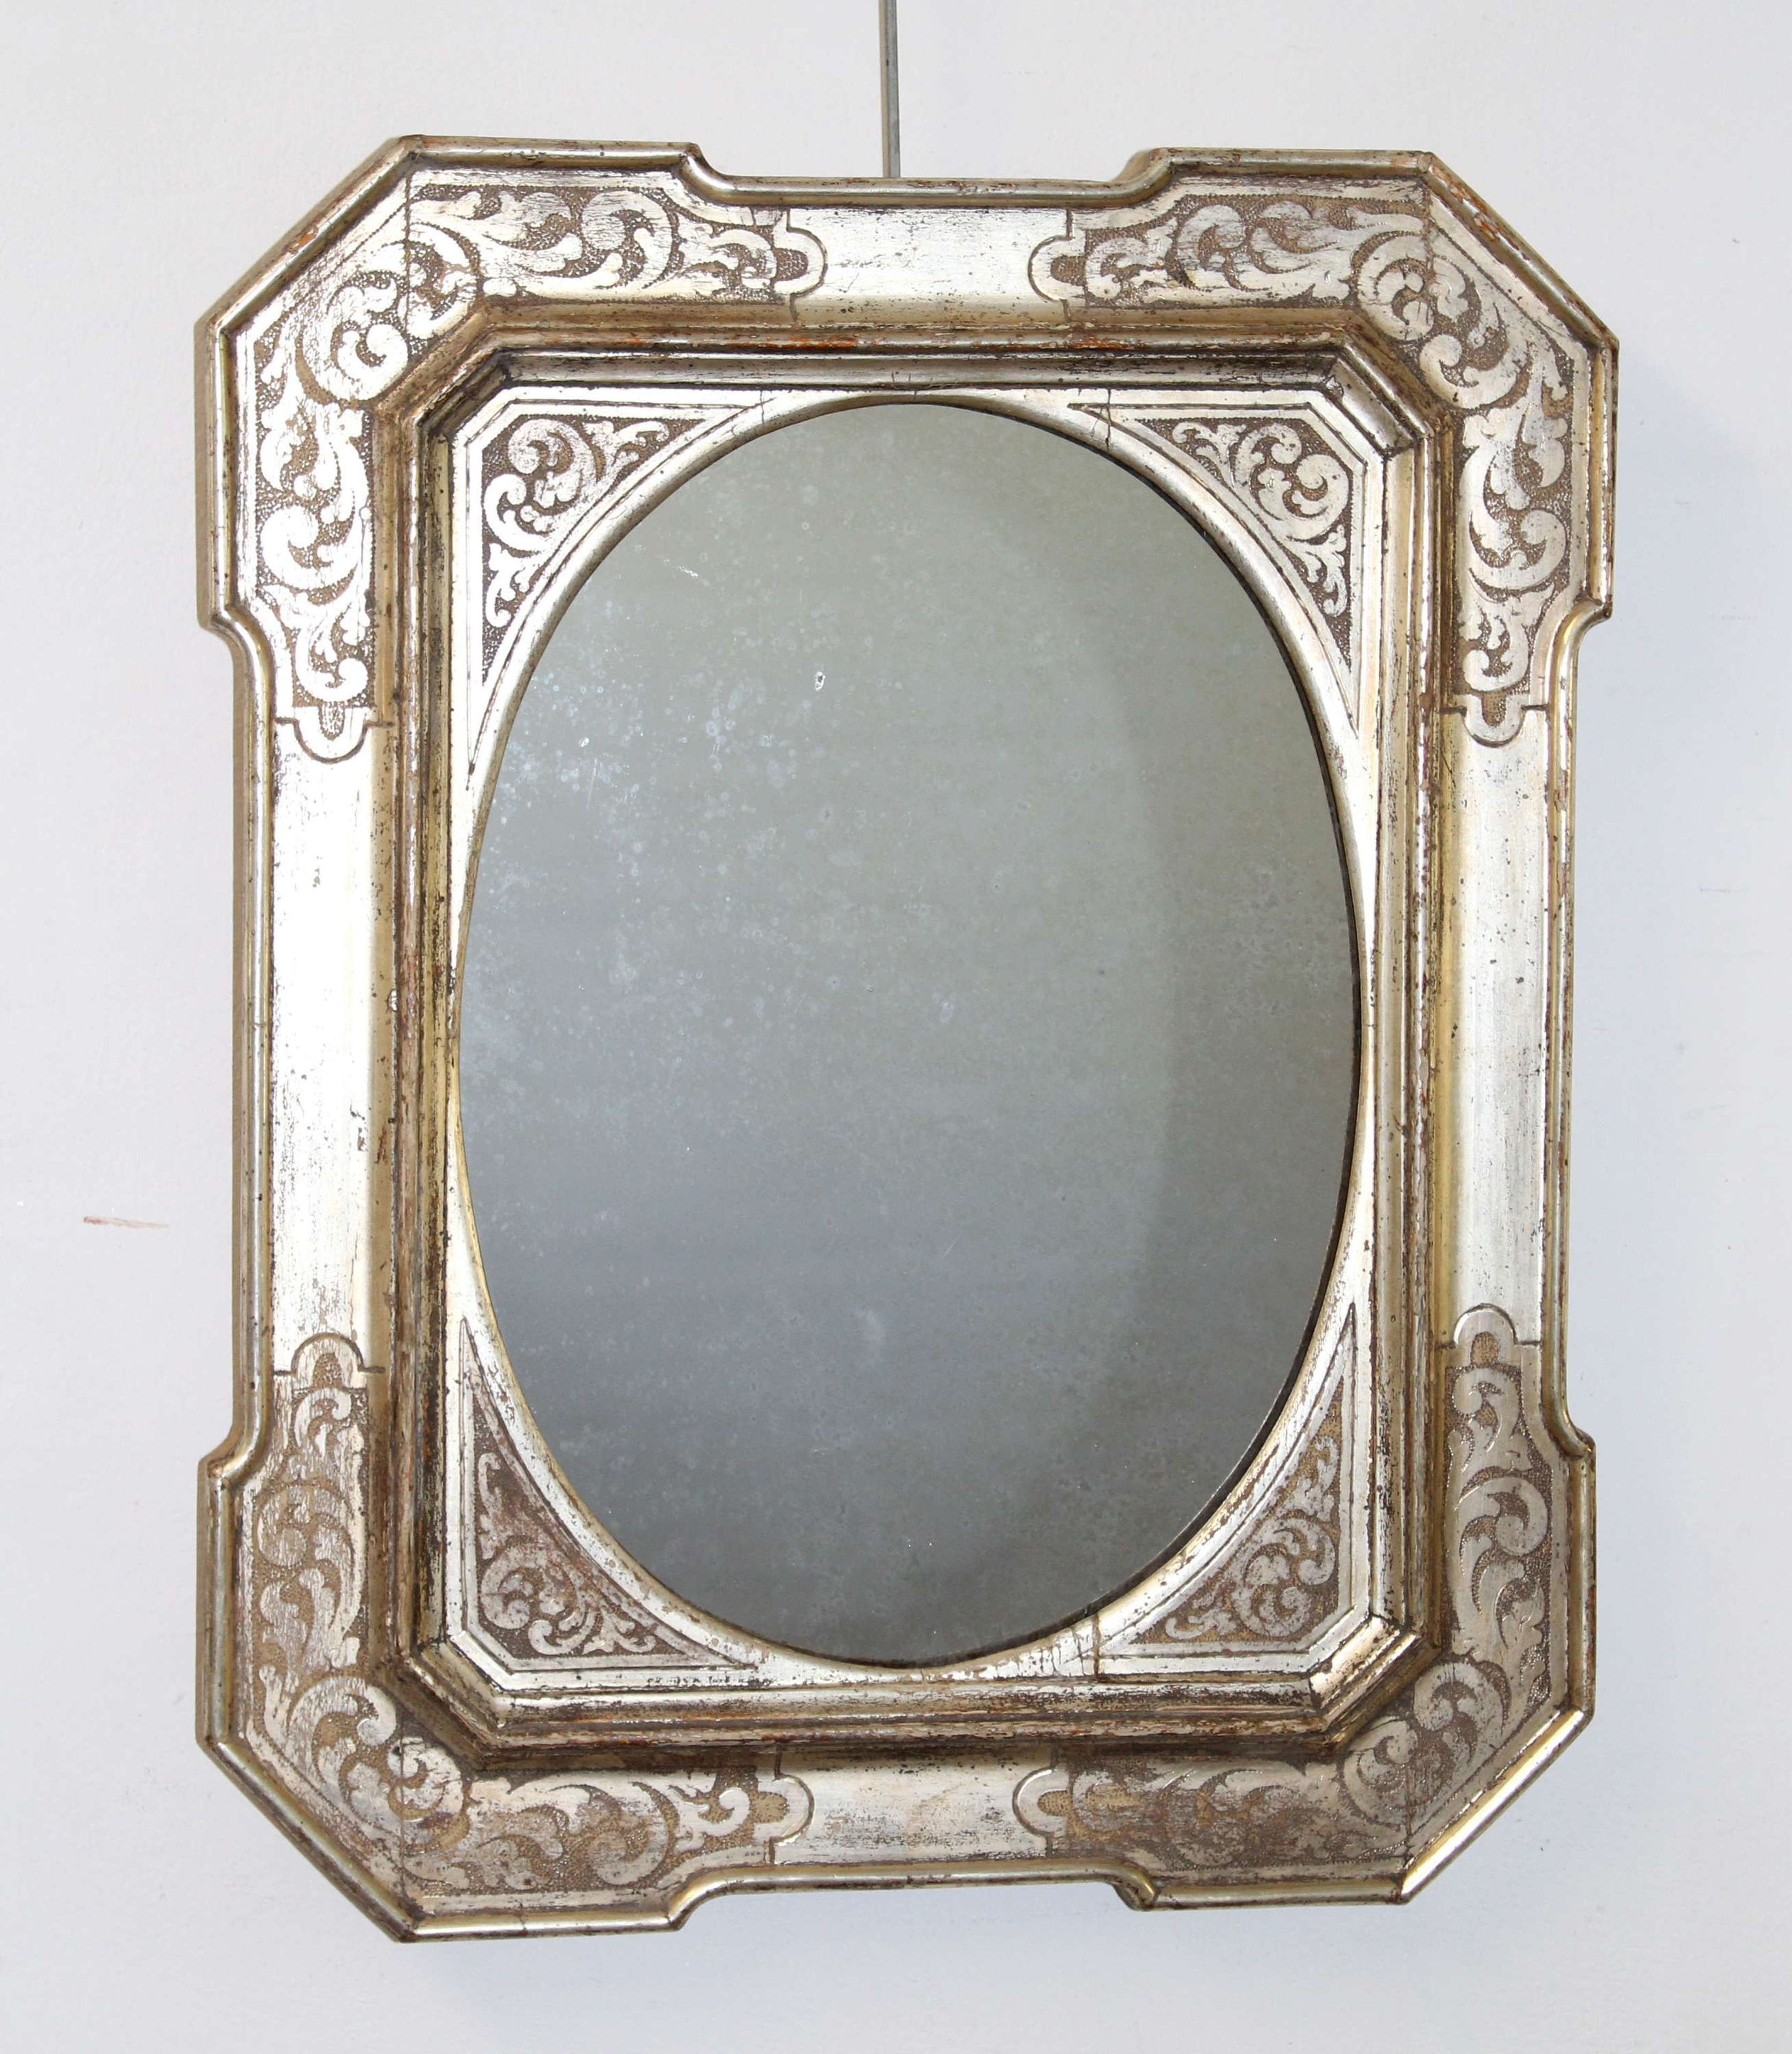 Small antique Italian mirror with silverleafed frame